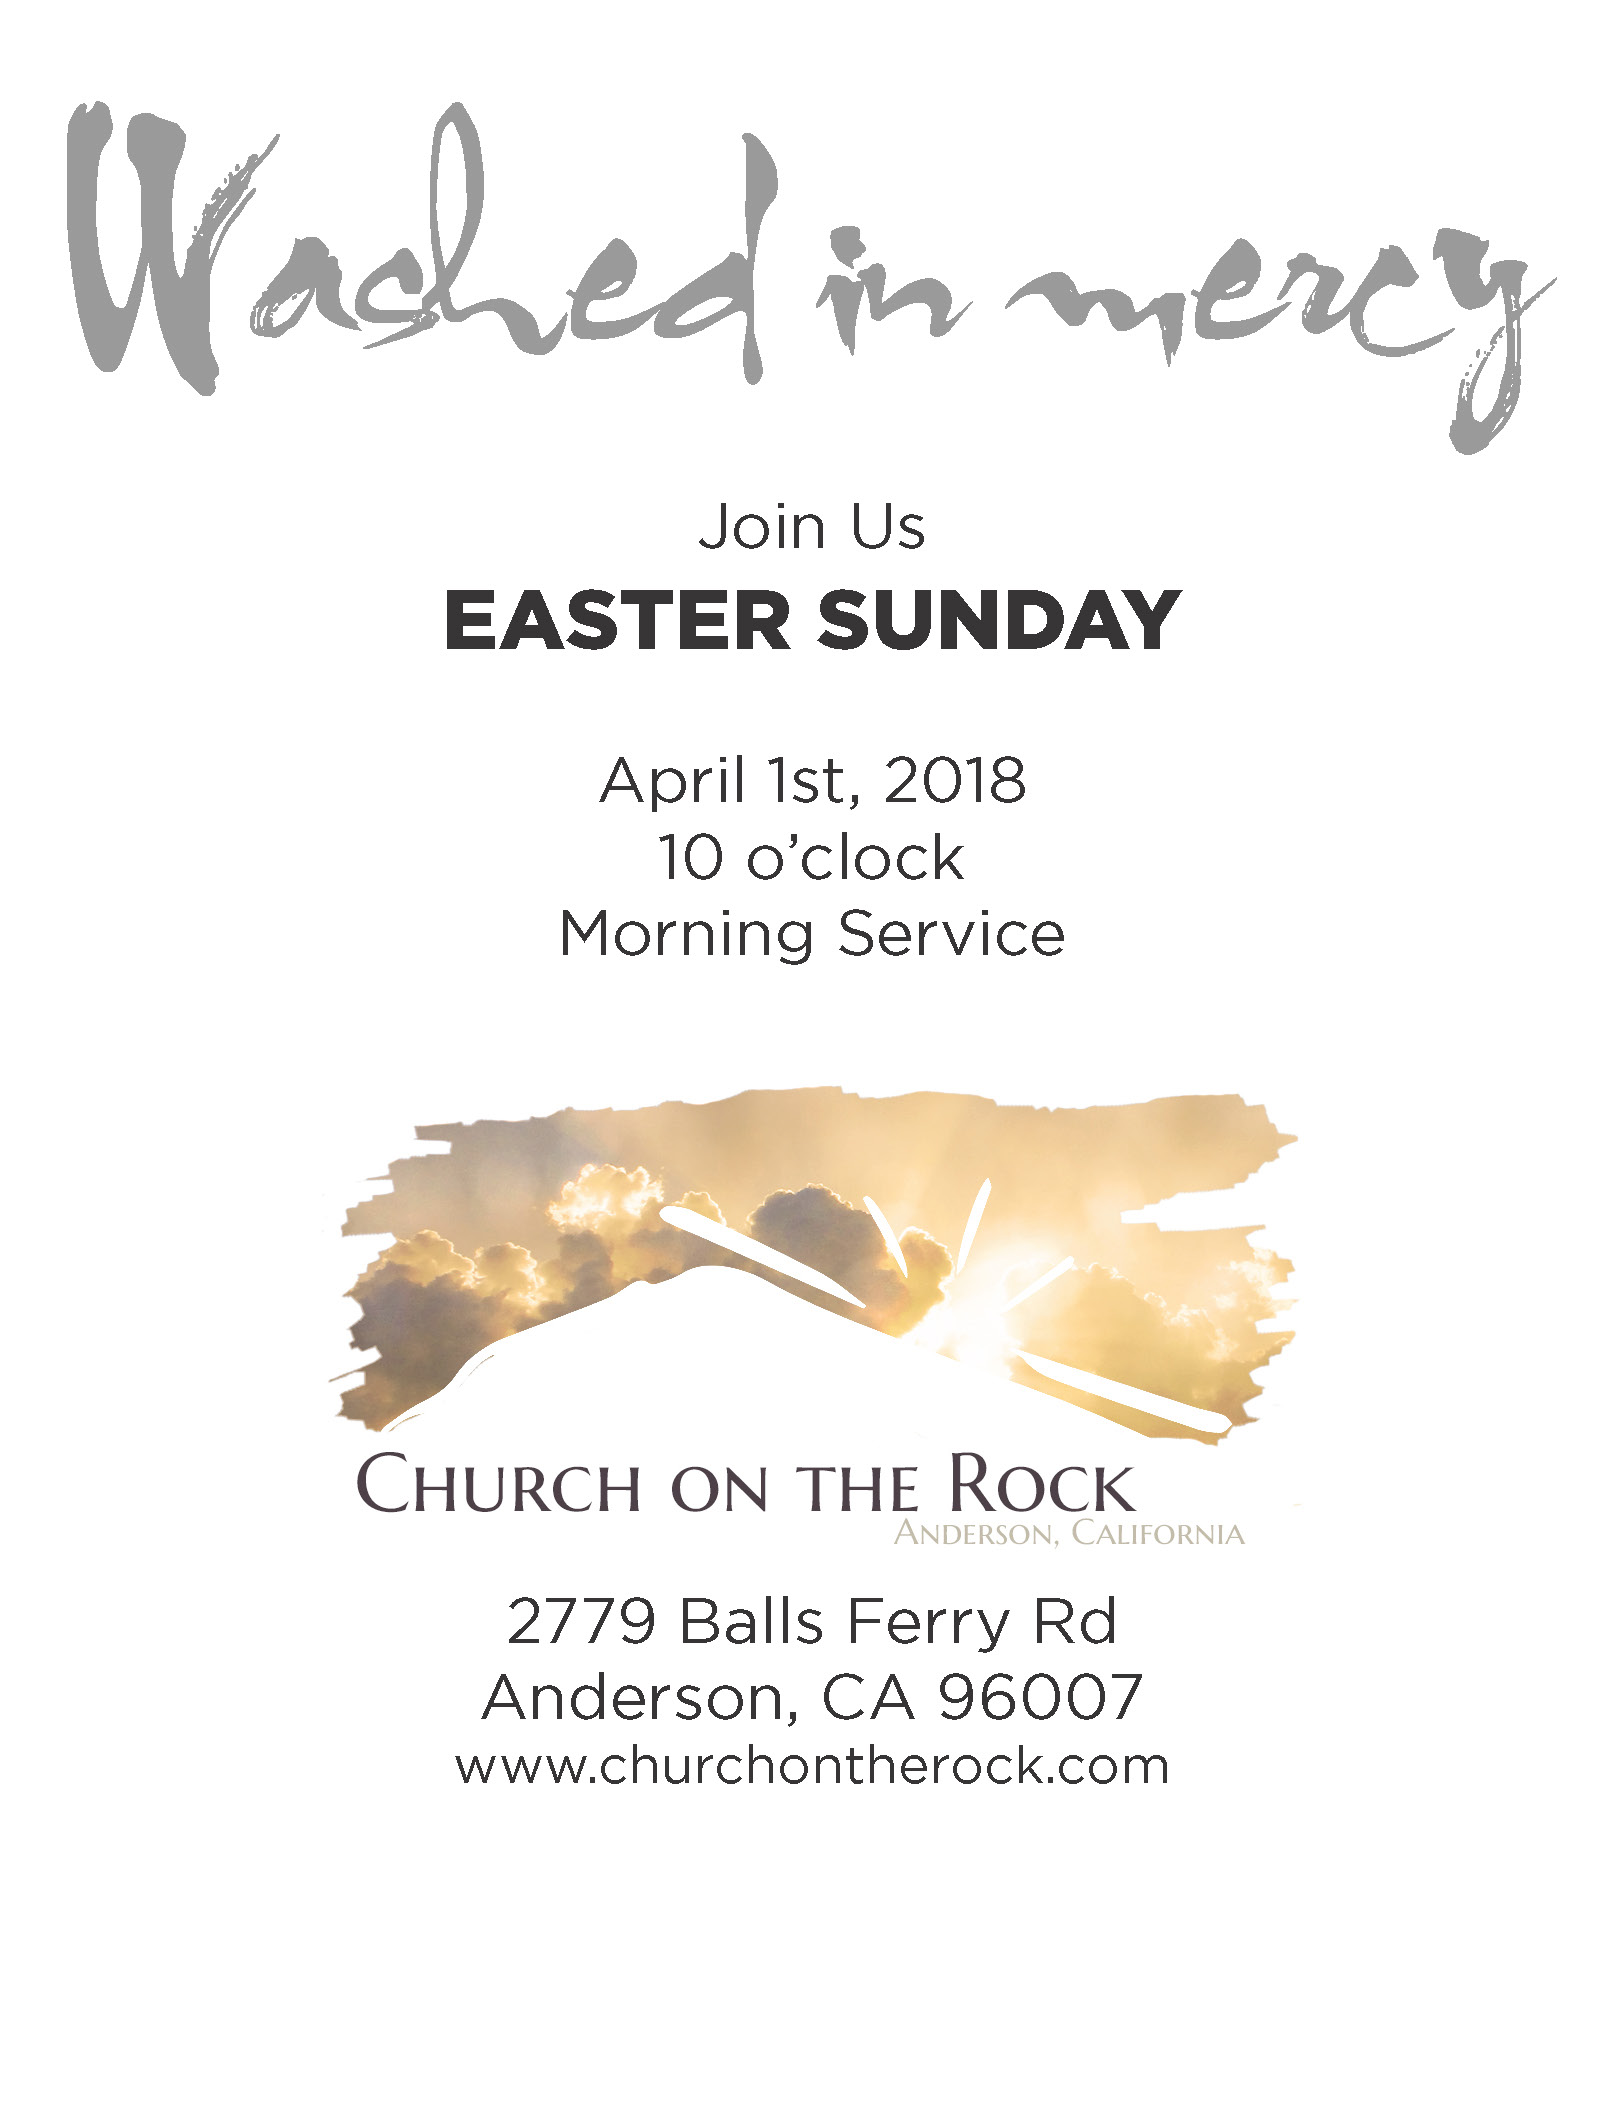 COTR_2018 Easter Invite_PROOF_Page_2.jpg